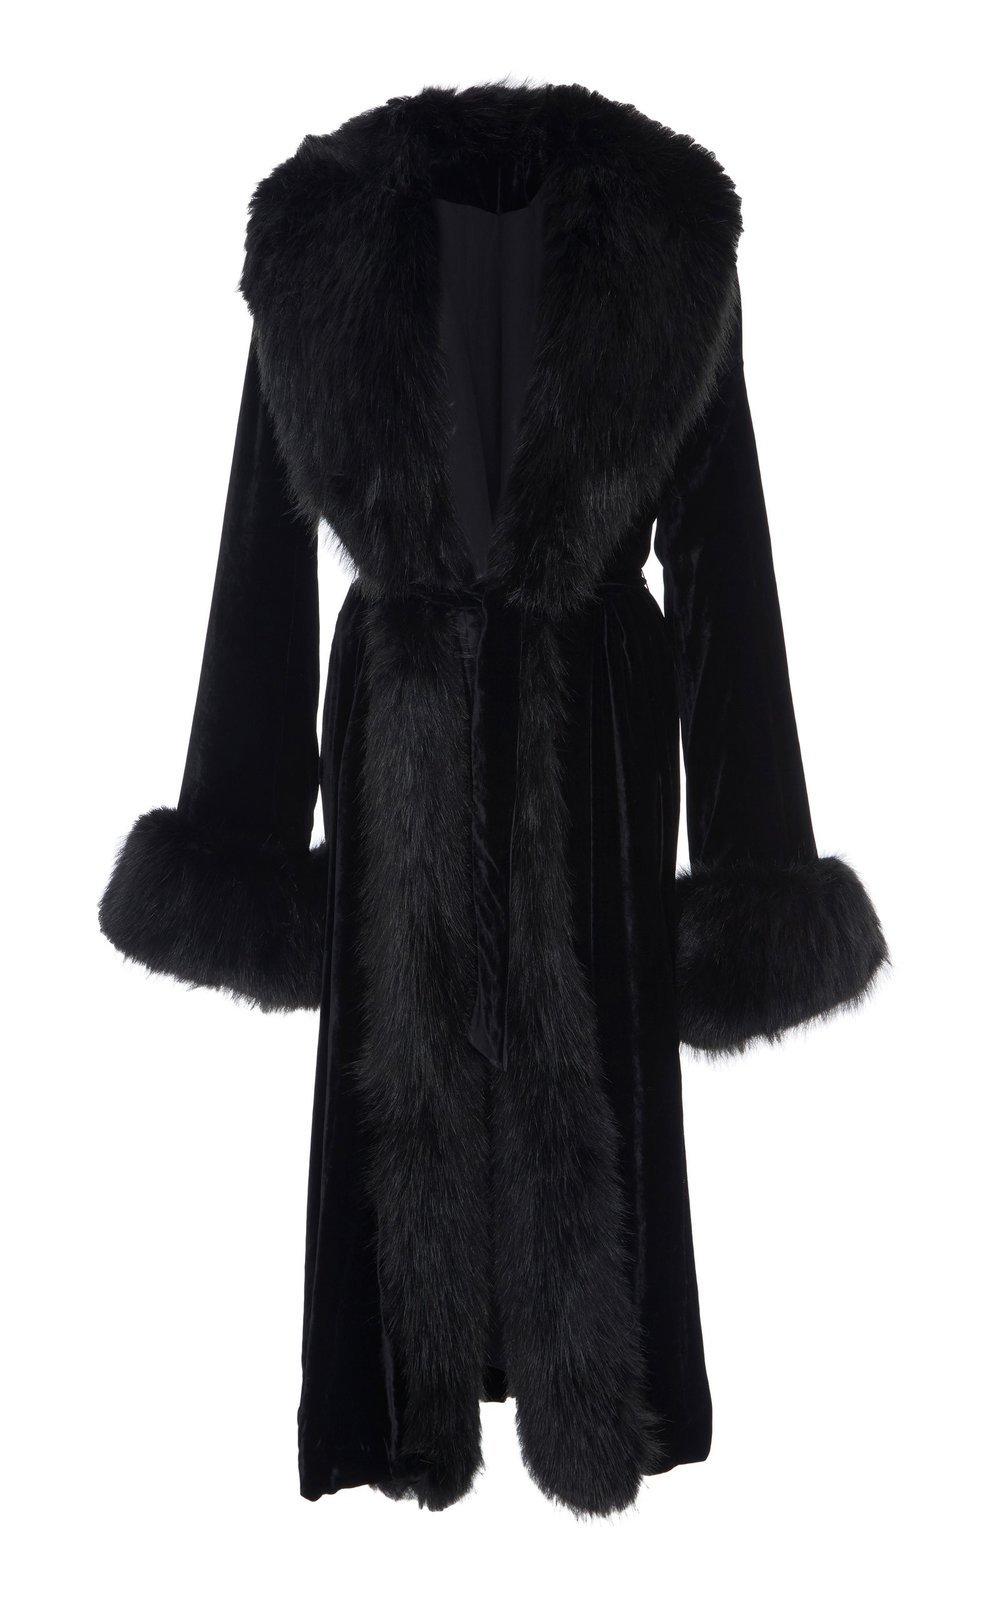 Mayflower Silk Velvet Coat - BLACK  This Silk Velvet coat features bell sleeves and an elegant oversized silhouette. Faux fur trims add a touch of glamour to every outfit. A tone-on-tone belt defines the waistline, while creating a highly flattering silhouette.